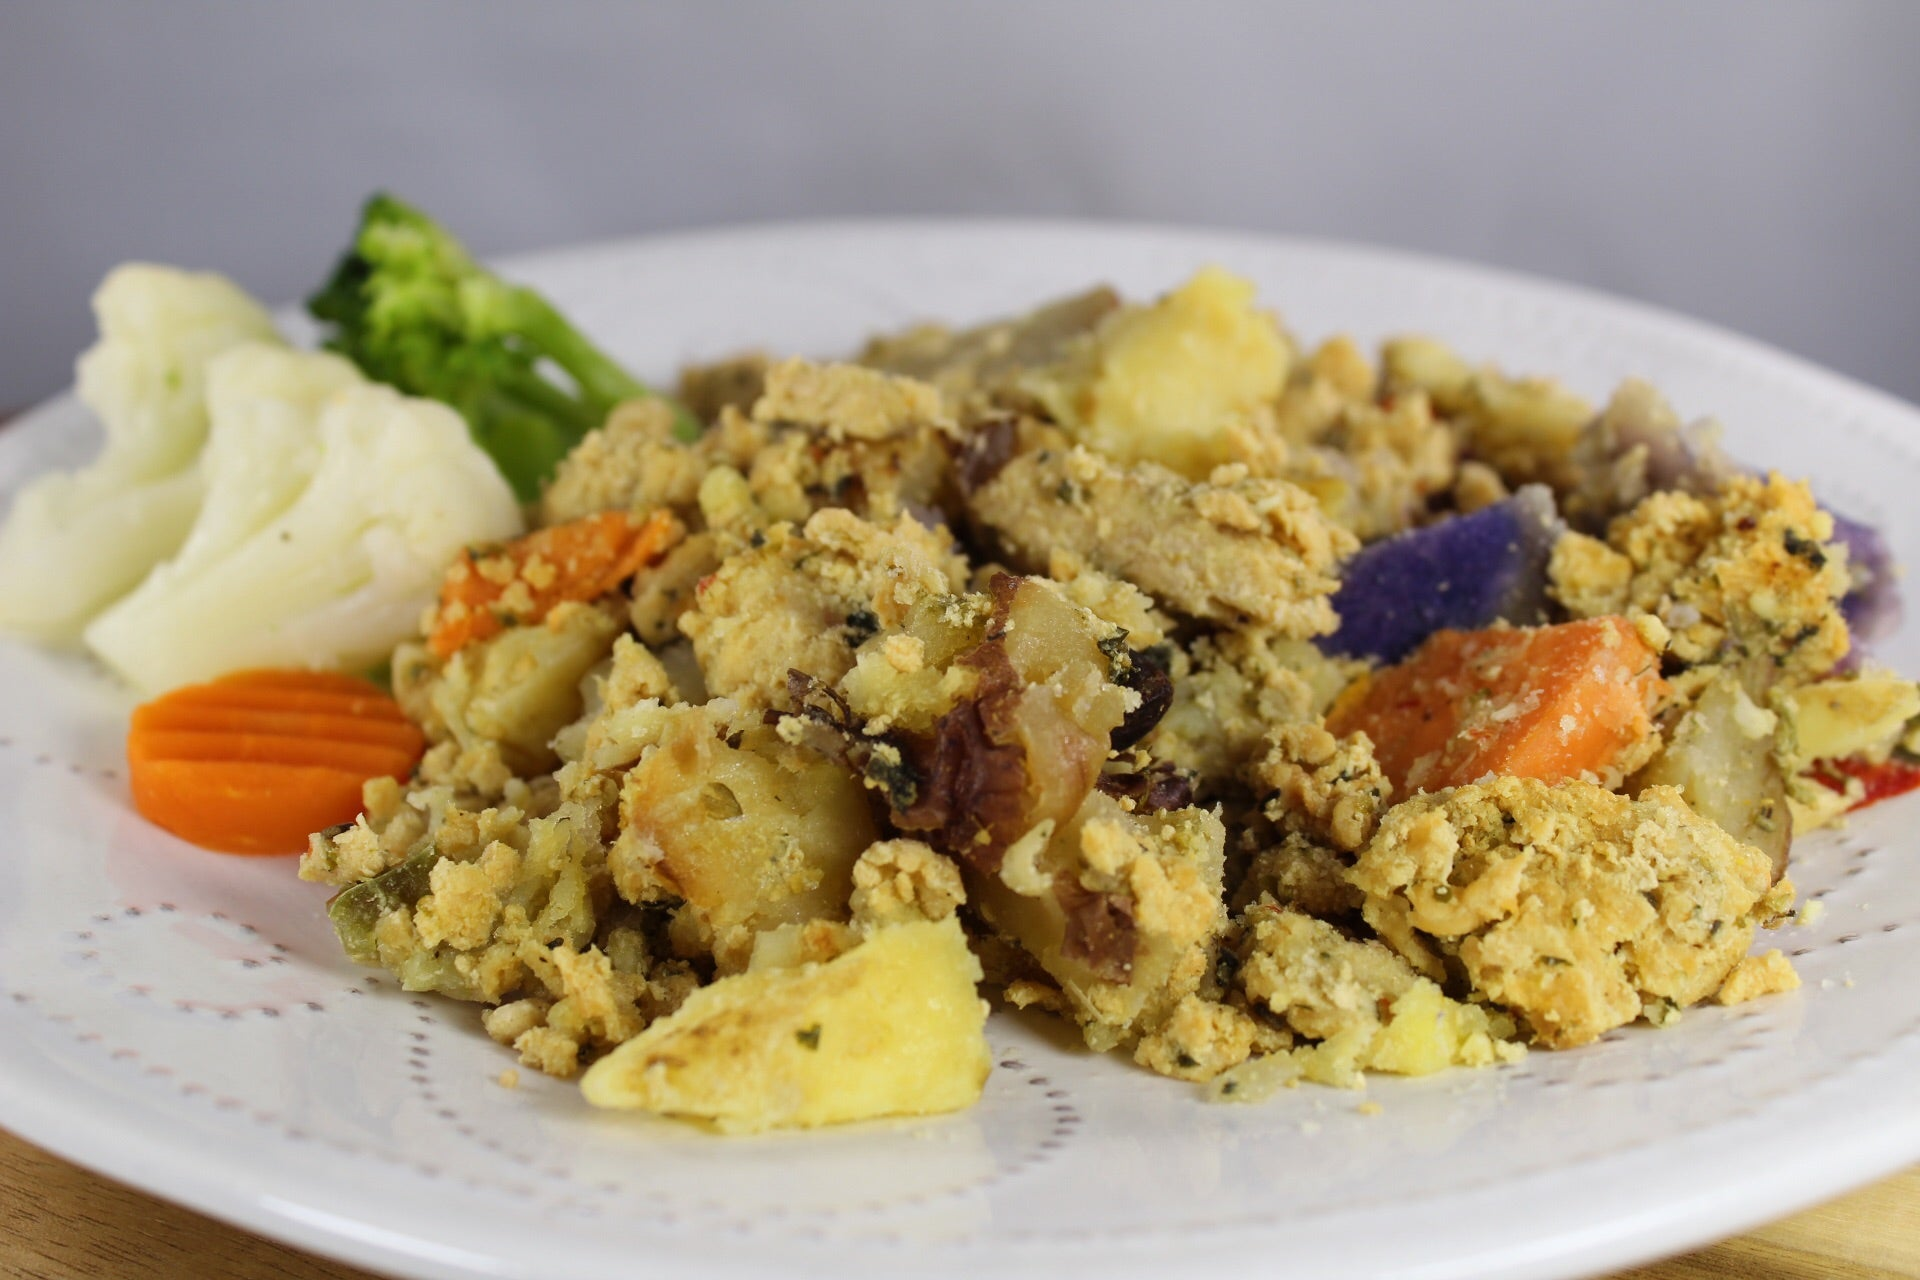 Cacerola de Papitas con Carne de Pavo y Vegetales / Turkey and Potato Casserole with Vegetables